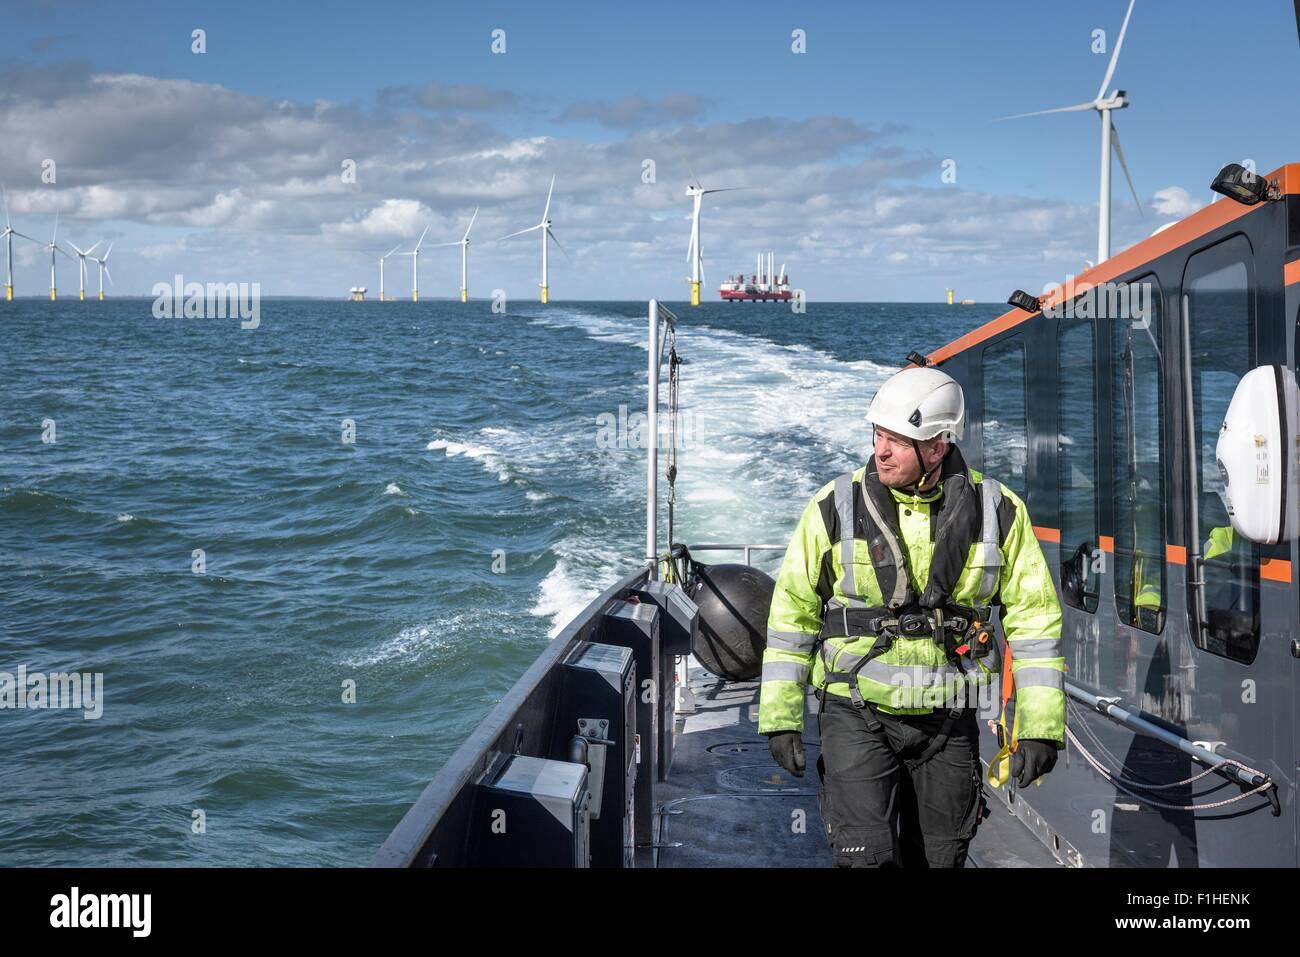 Crew member on deck of boat on offshore wind farm Stock Photo